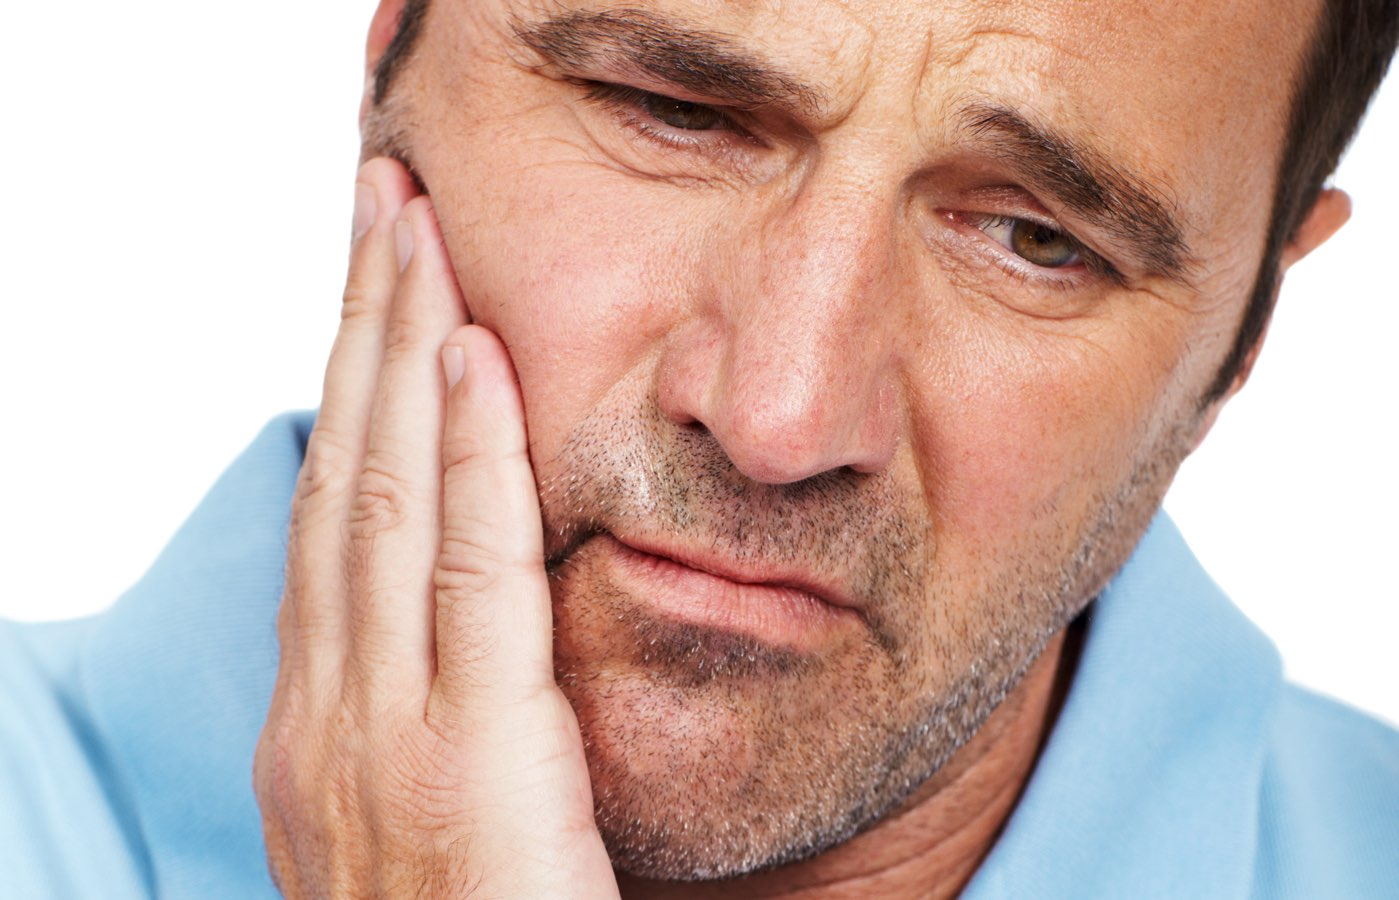 TMJ treatment in Moncton